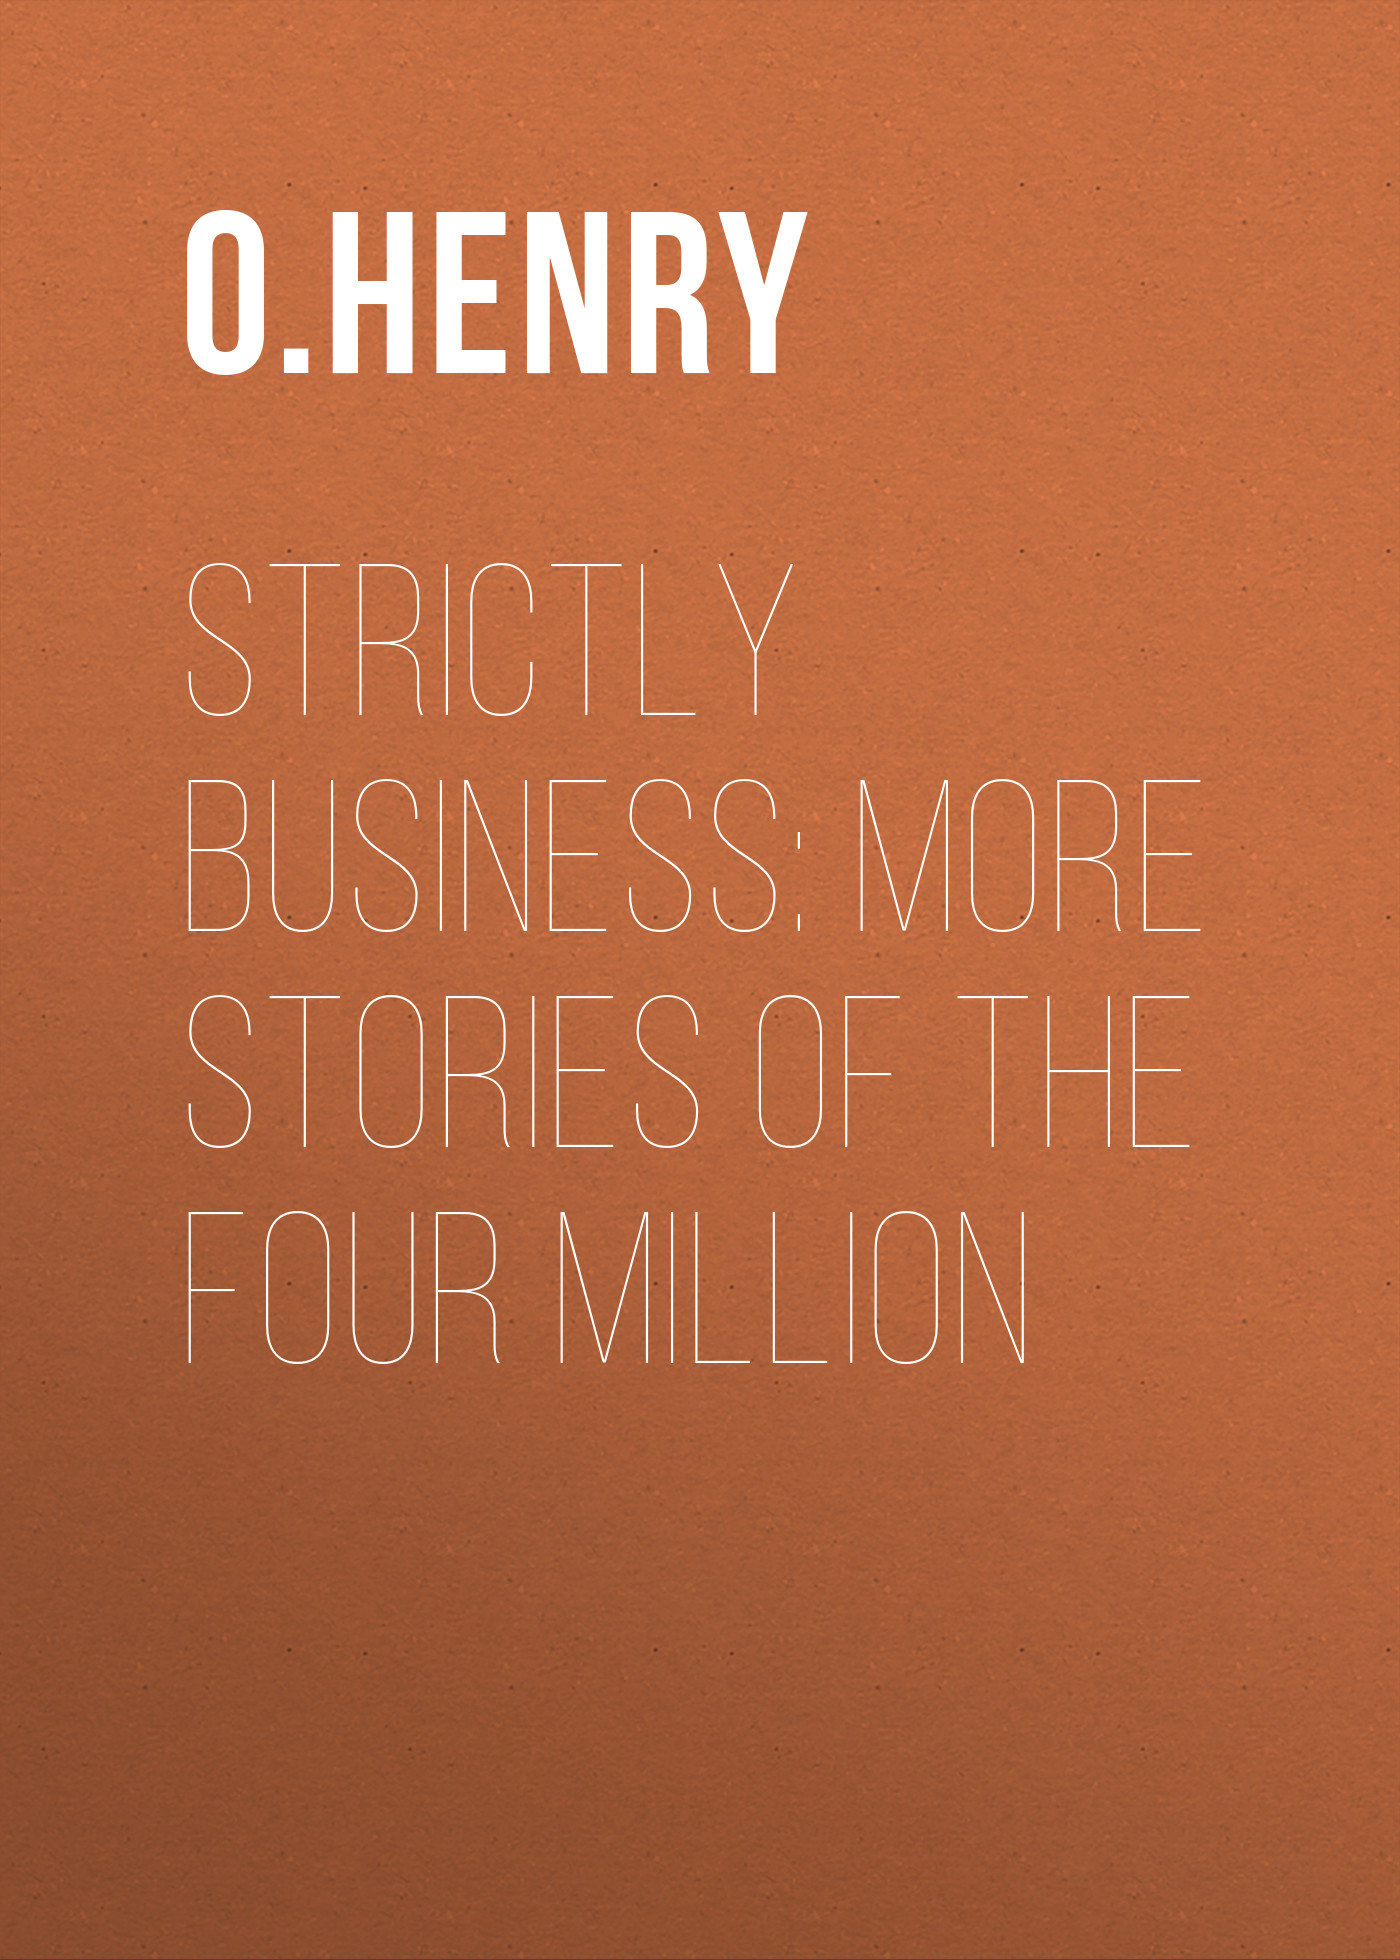 Фото - О. Генри Strictly Business: More Stories of the Four Million henry o the four million